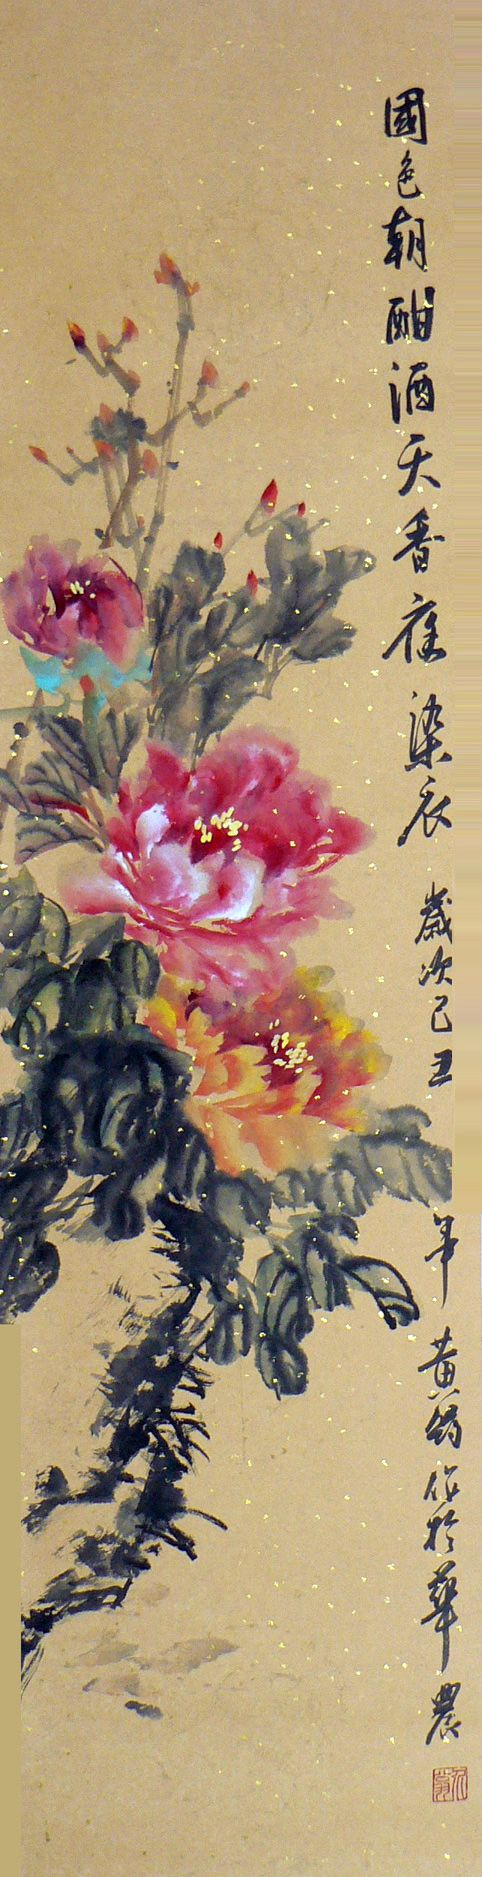 Various Artists - Peony from Jerry Huang #sumie #brushpainting #Ink and Wash Painting #Chinese Art #Japanese Art